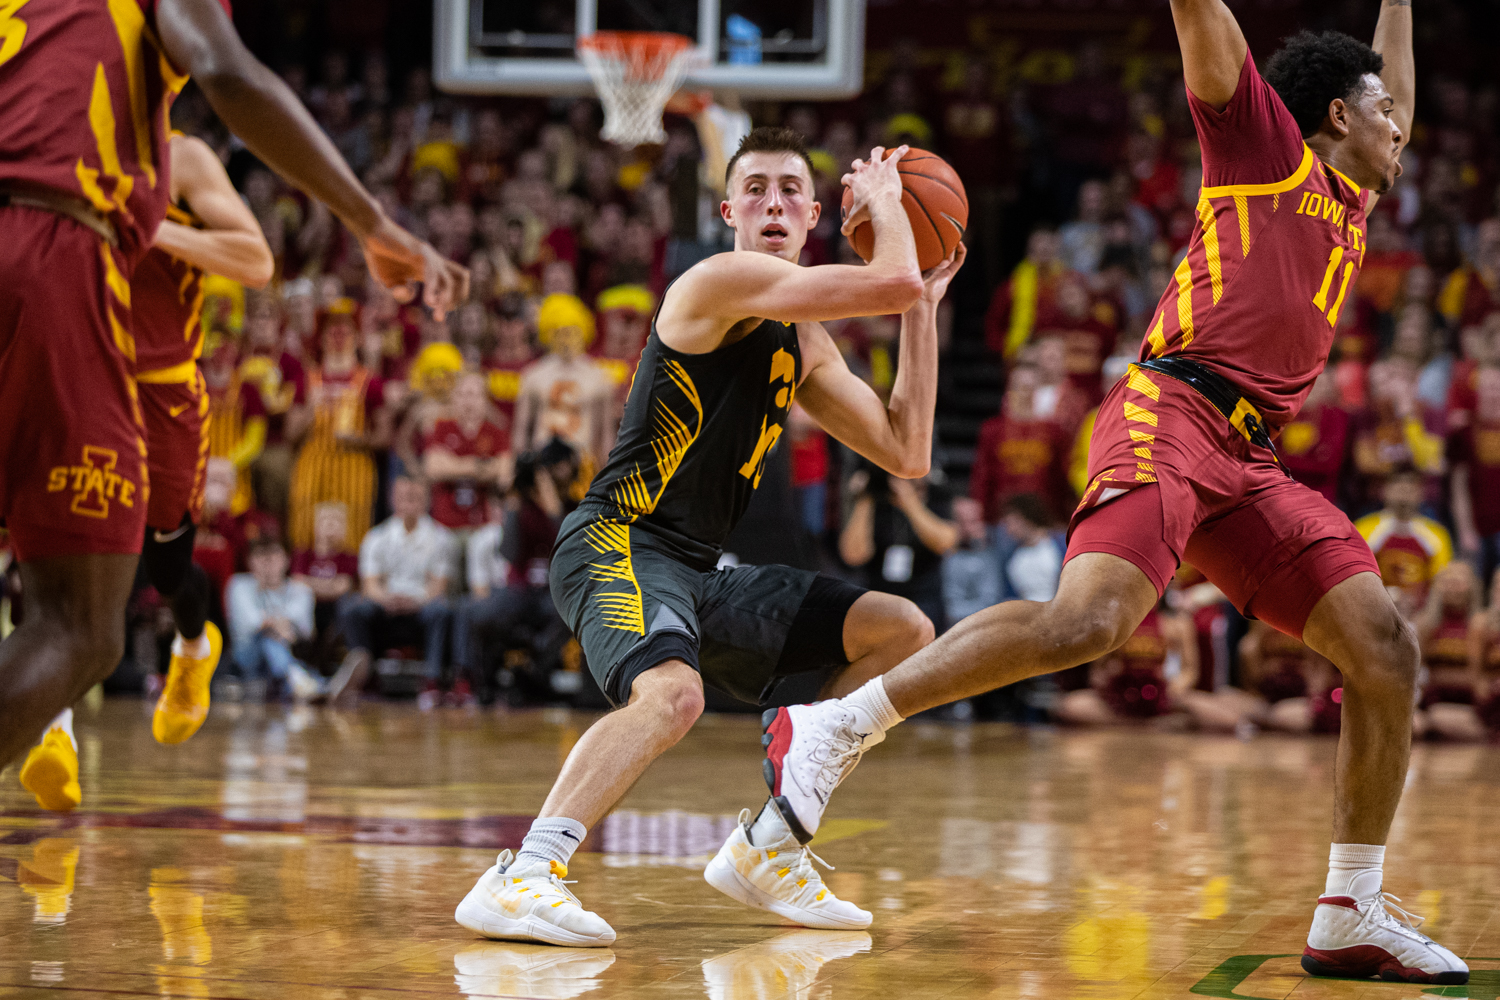 Iowa guard Joe Wieskamp looks to pass during a menÕs basketball match between Iowa and Iowa State at Hilton Coliseum on Thursday, Dec. 12, 2019. Wieskamp made 5-of-10 shots on the night.